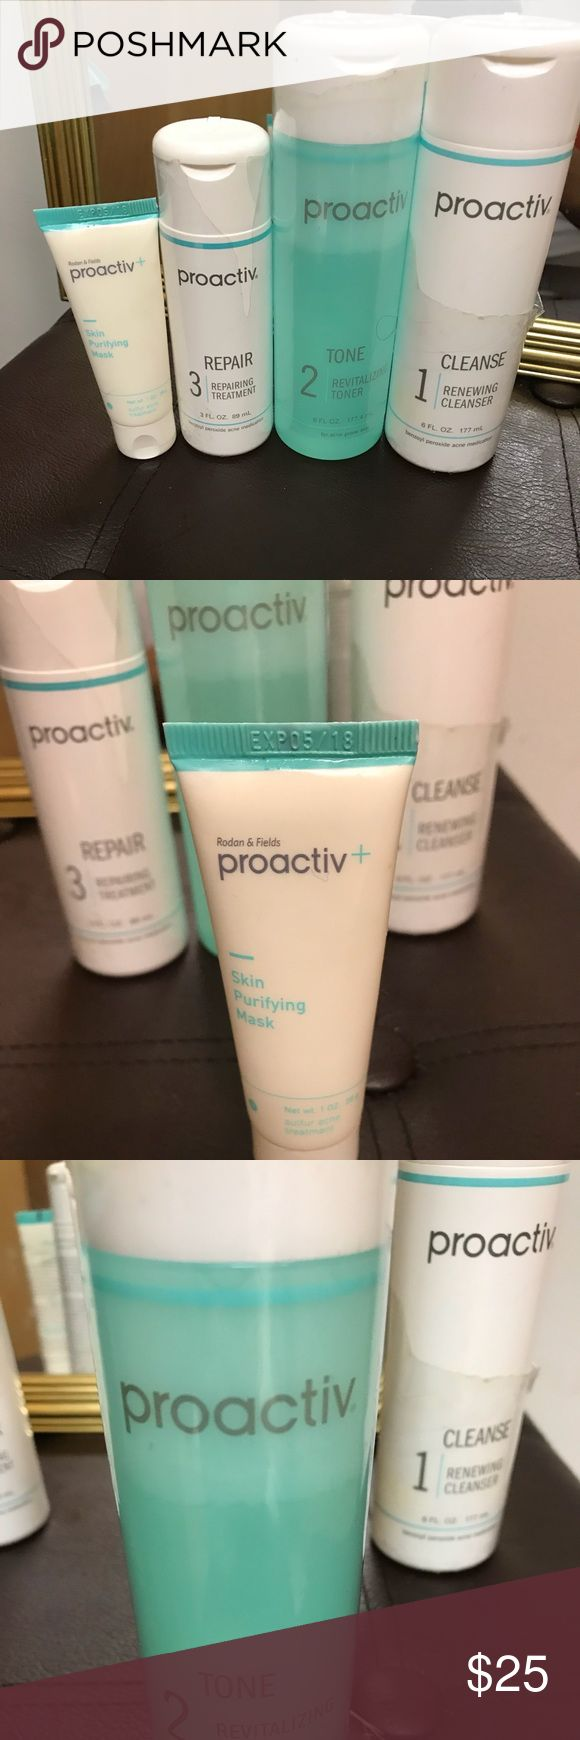 Proactiv Kit Barely used It is a 3 month kit so it has about to 2  and half more months left. Also includes a never used skin purifying mask proactiv Other